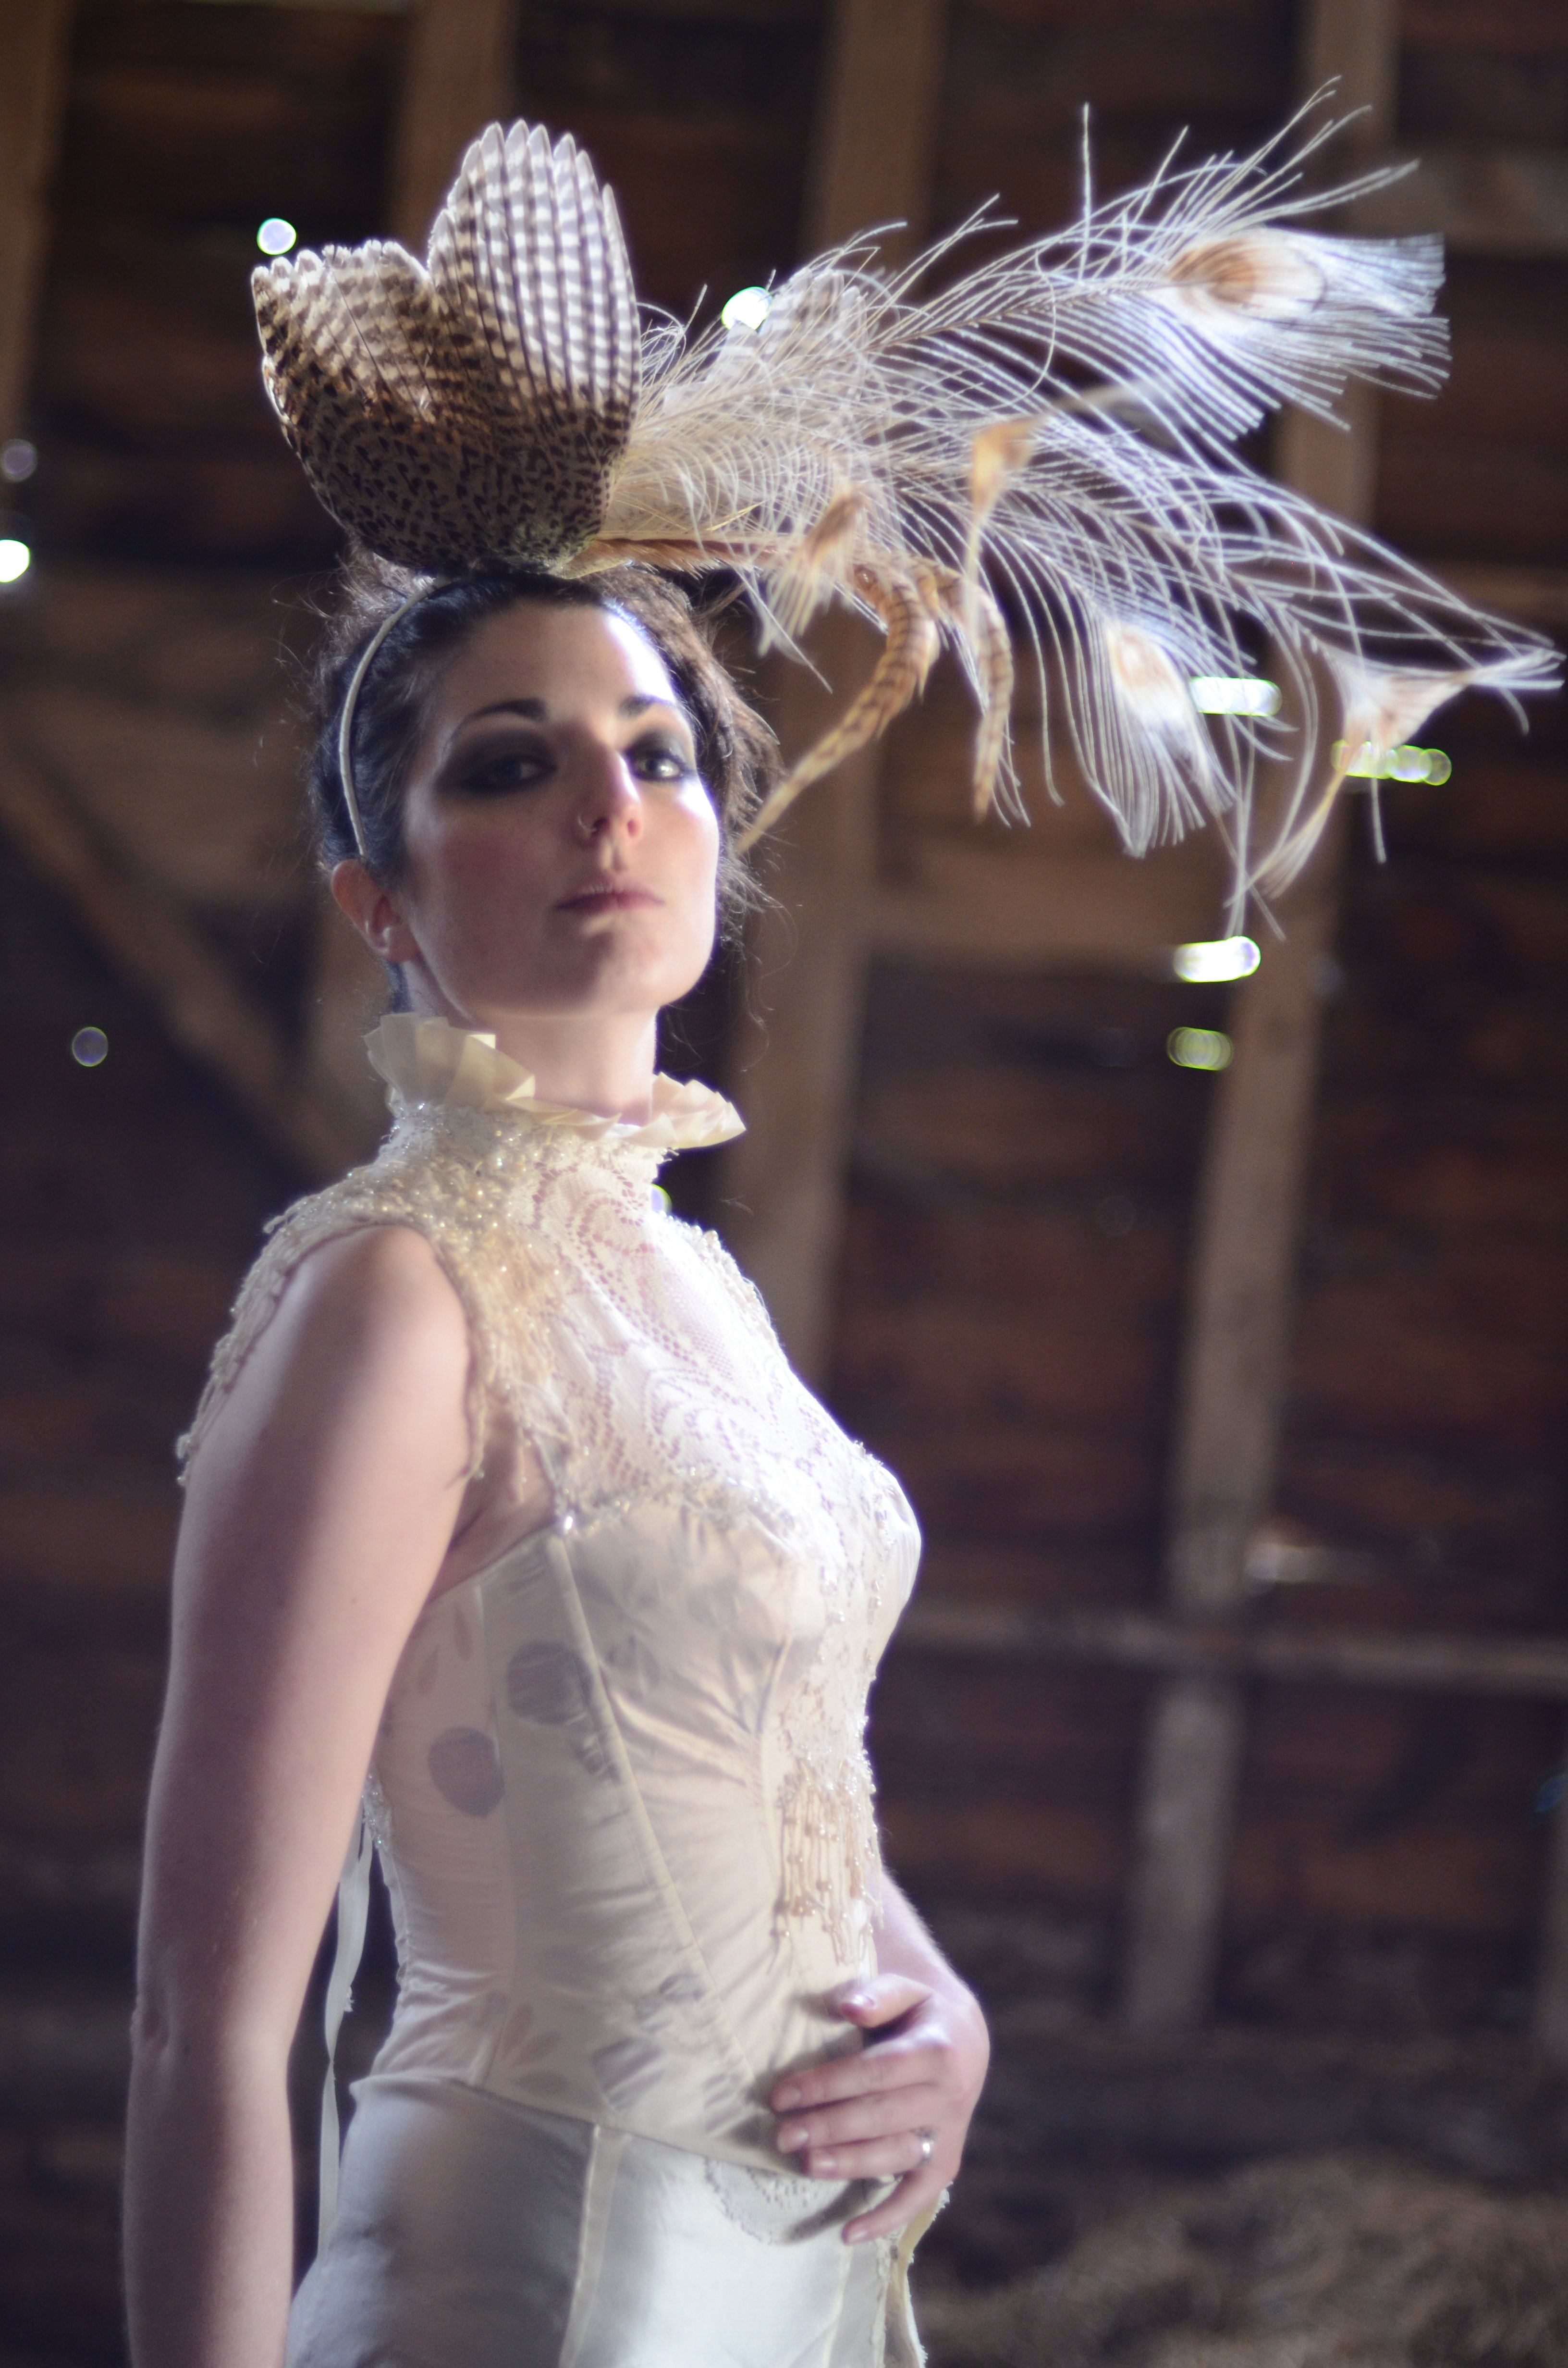 Alternative, historically inspired dress with real flower petals, albino peacock feathers